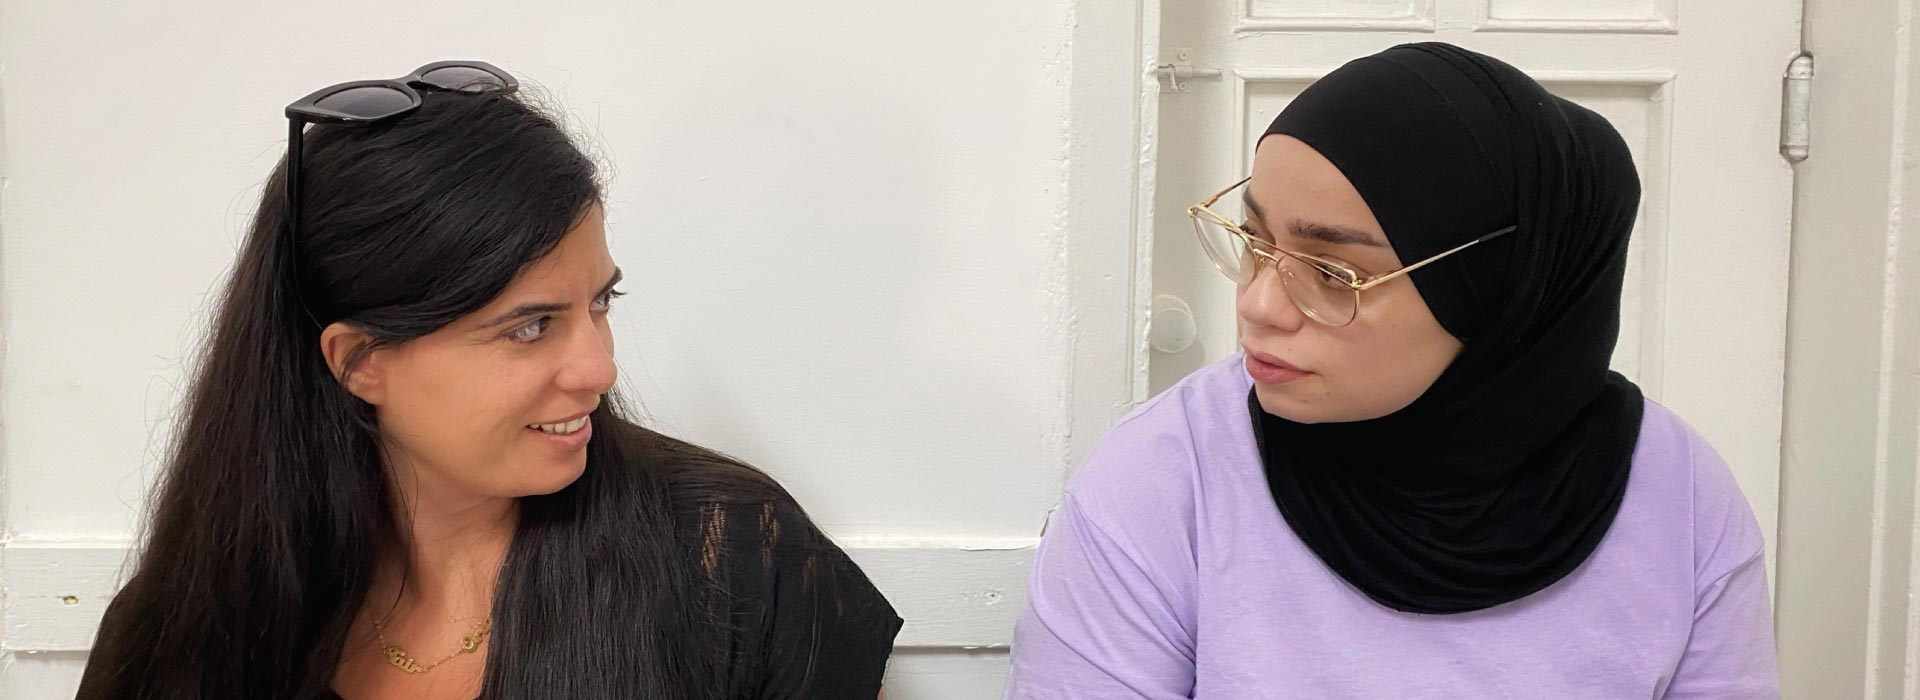 Two women looking at each other